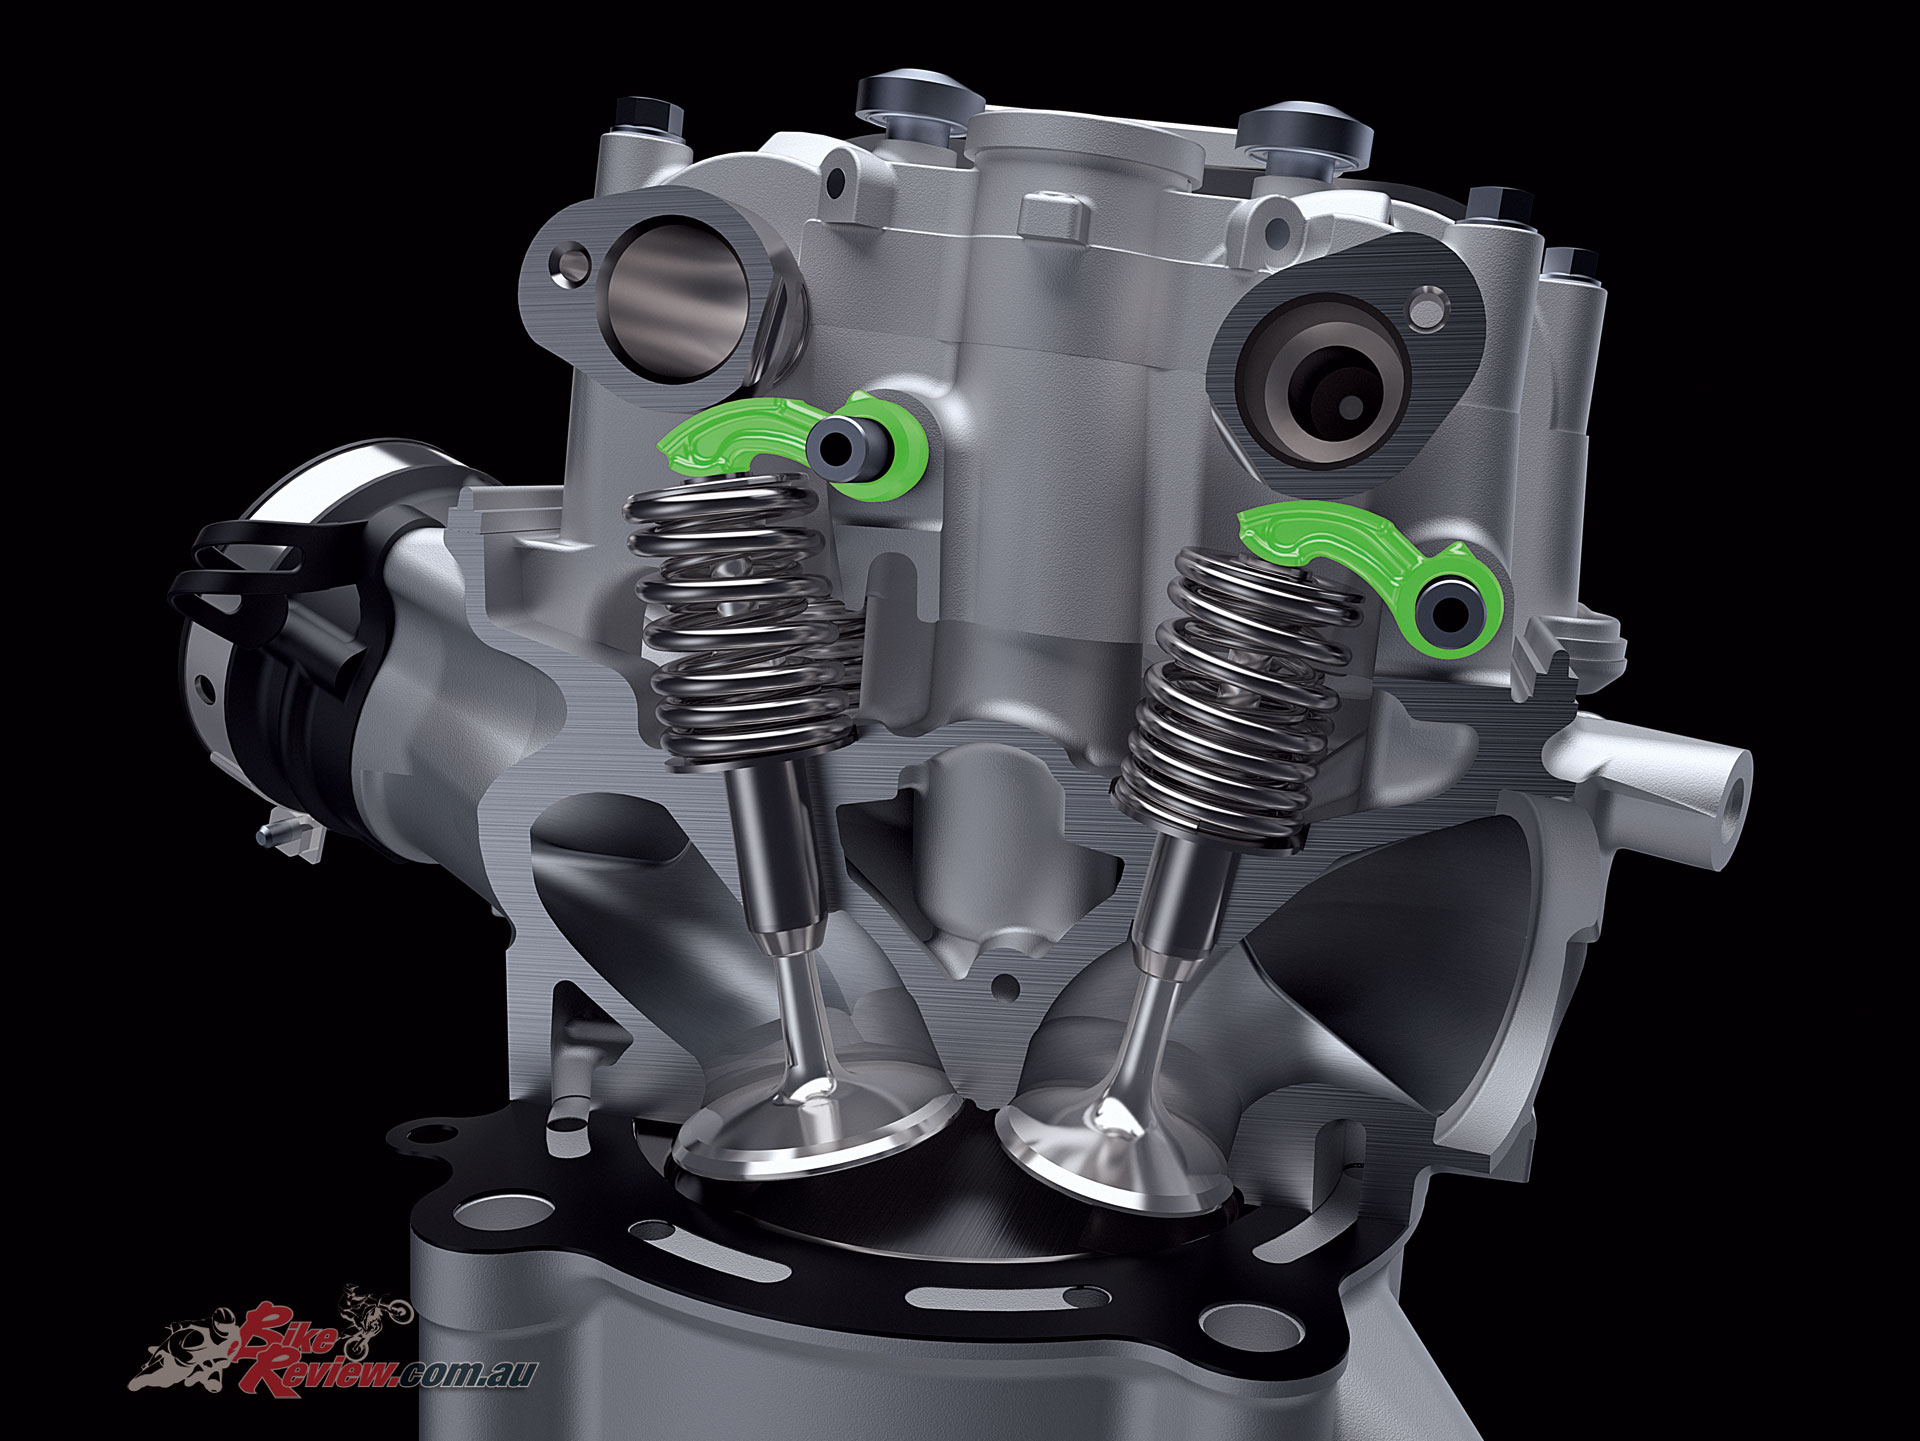 On the 2019 KX450 utilising the finger follower valve design has reduced the overall mass of the valve train, though valves are of a larger diameter